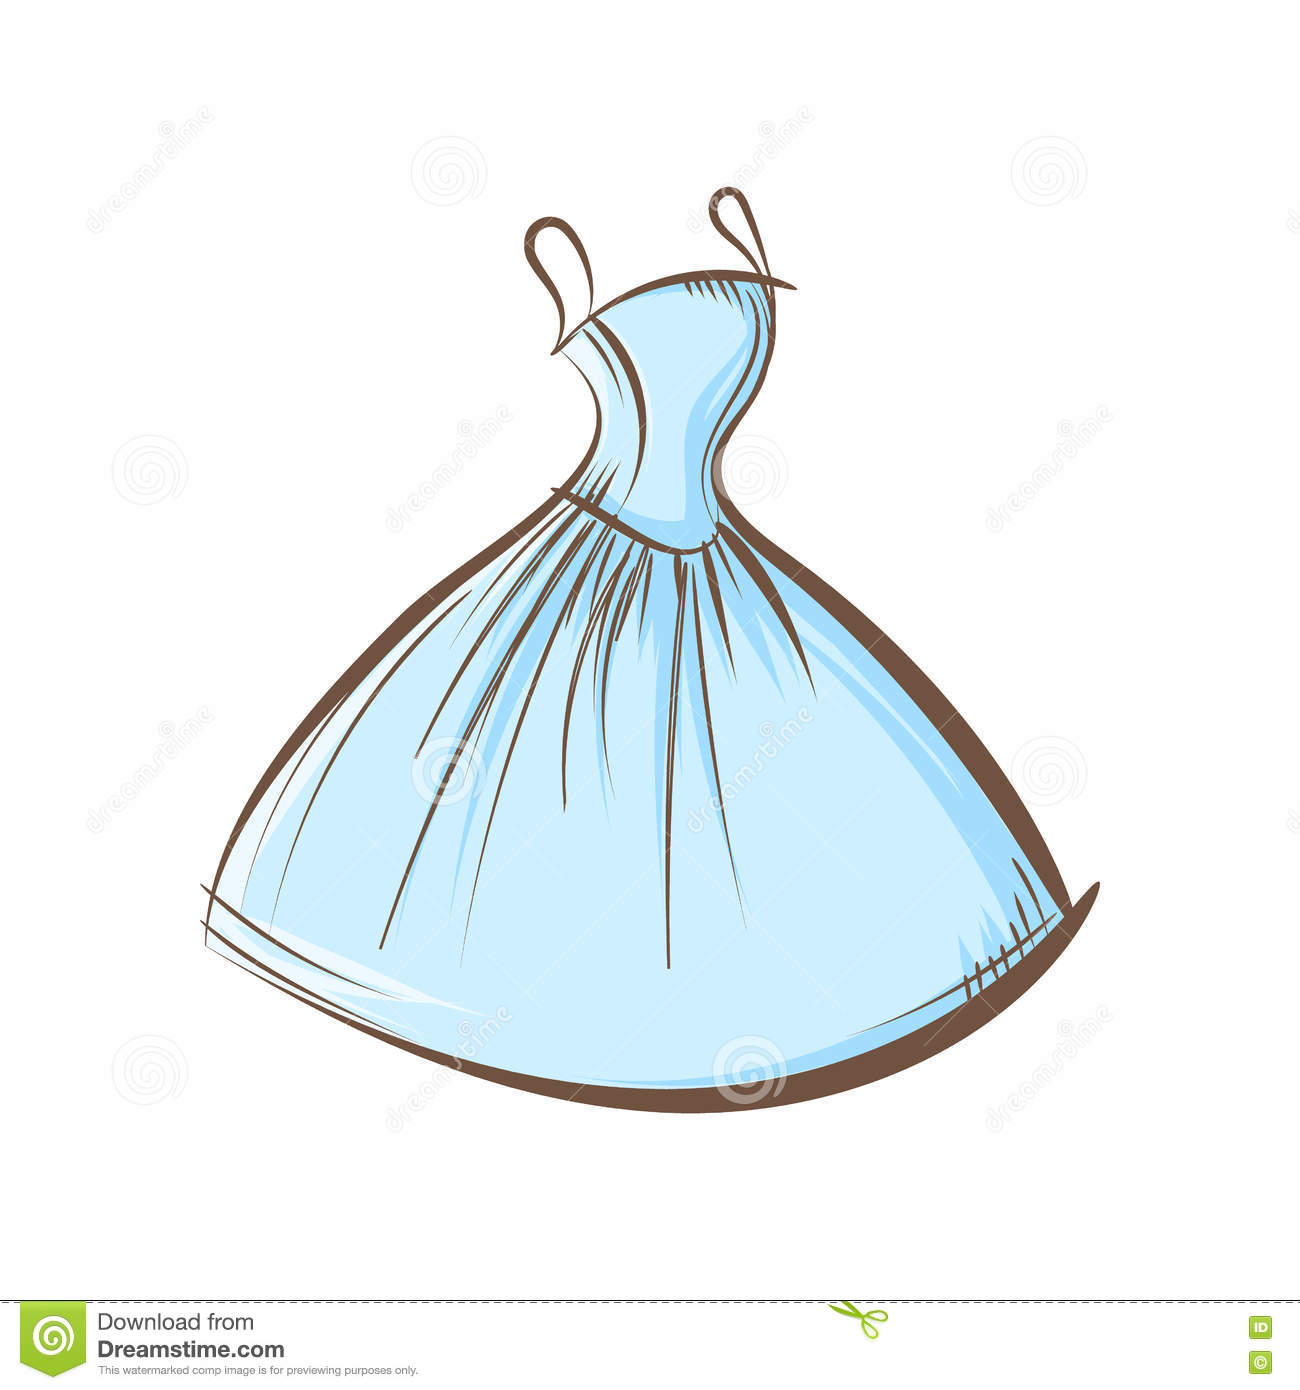 Ball gown hand drawing stock vector. Illustration of clothing - 72942638